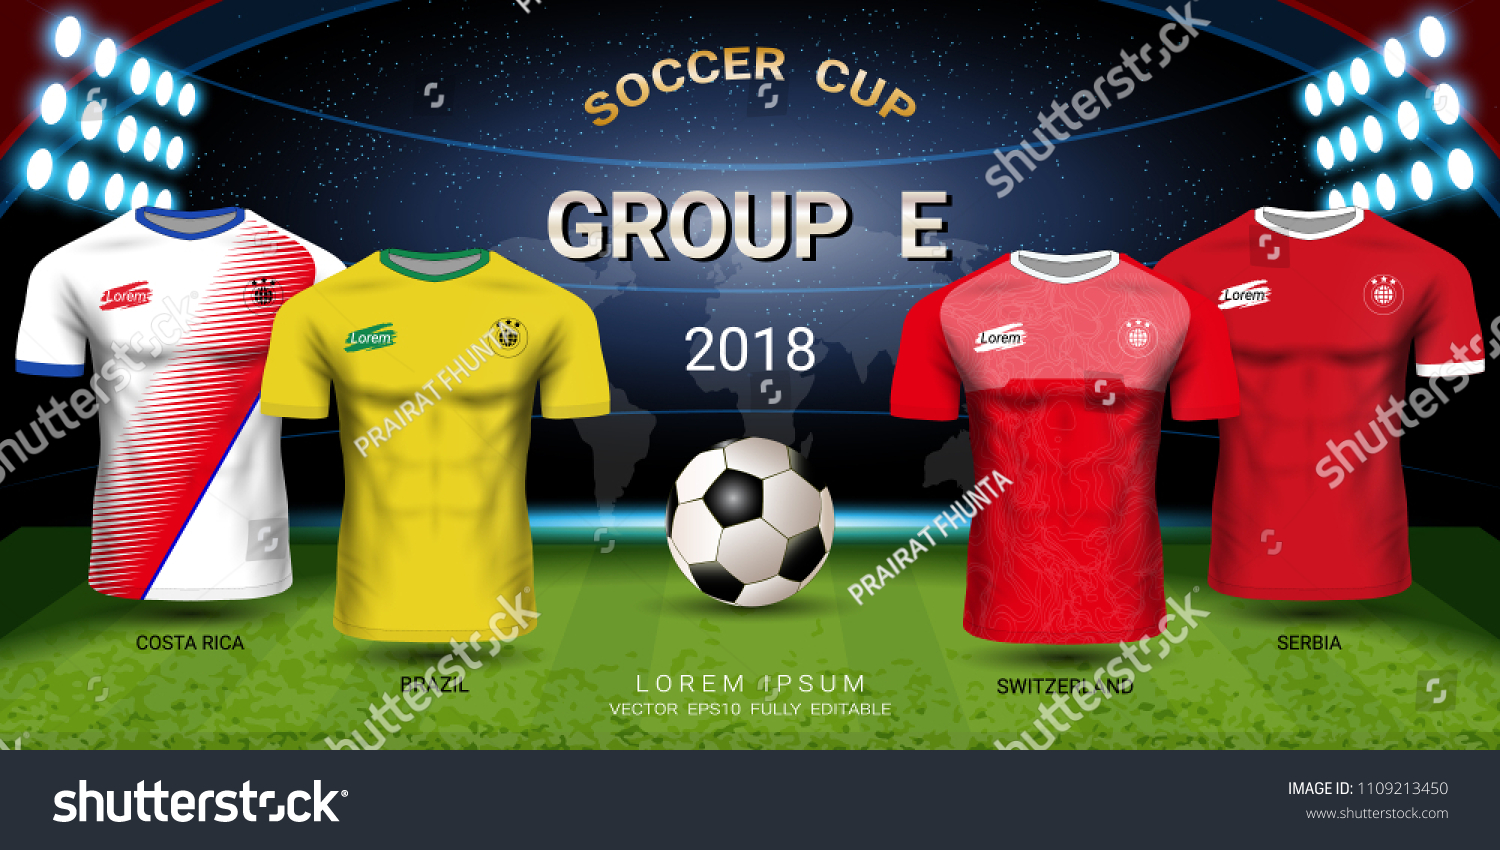 52738a1a0e2 Football cup 2018 World championship, National team soccer jersey group E,  Sport t-